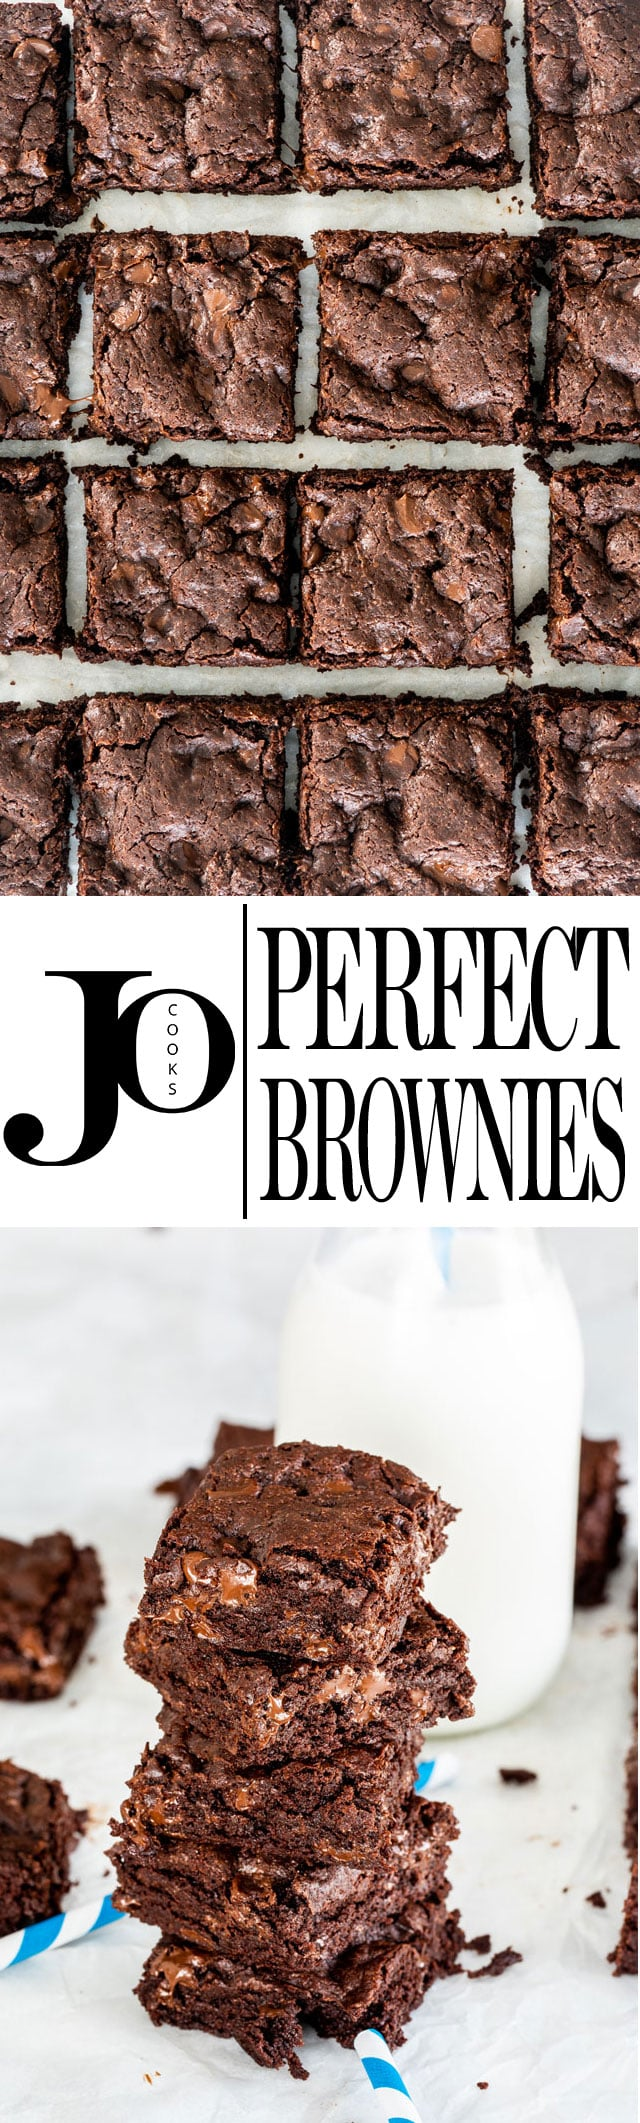 This Brownie Recipe is the only no-fail recipe you'll ever need! Perfect gooey brownies, incredibly fudgy, super easy to make and downright indulgent! #brownies